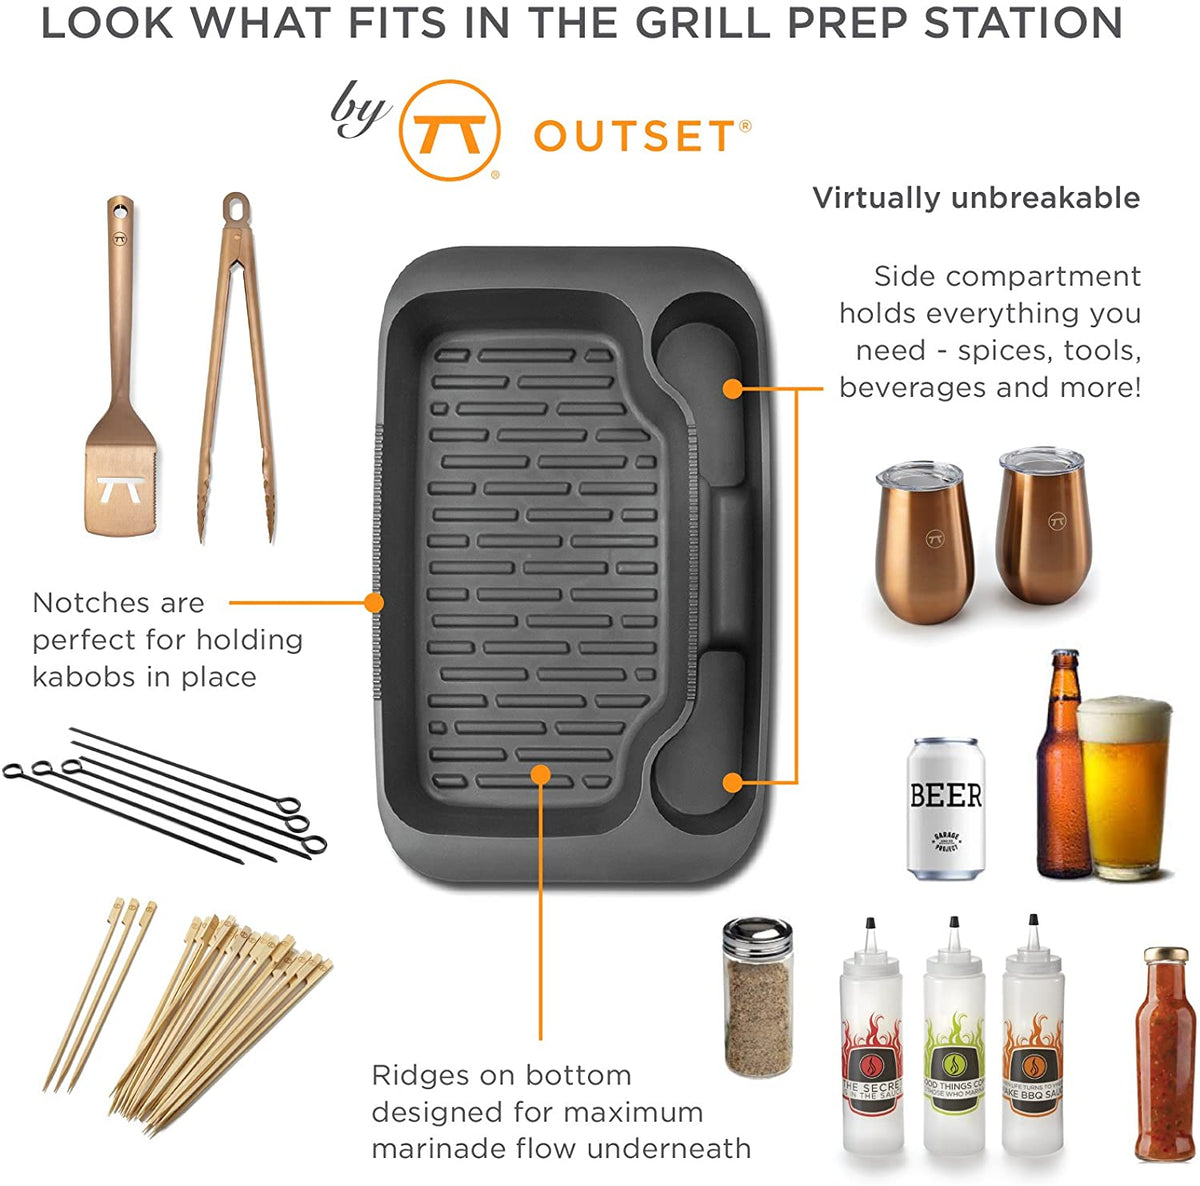 Outset Grill Prep Station